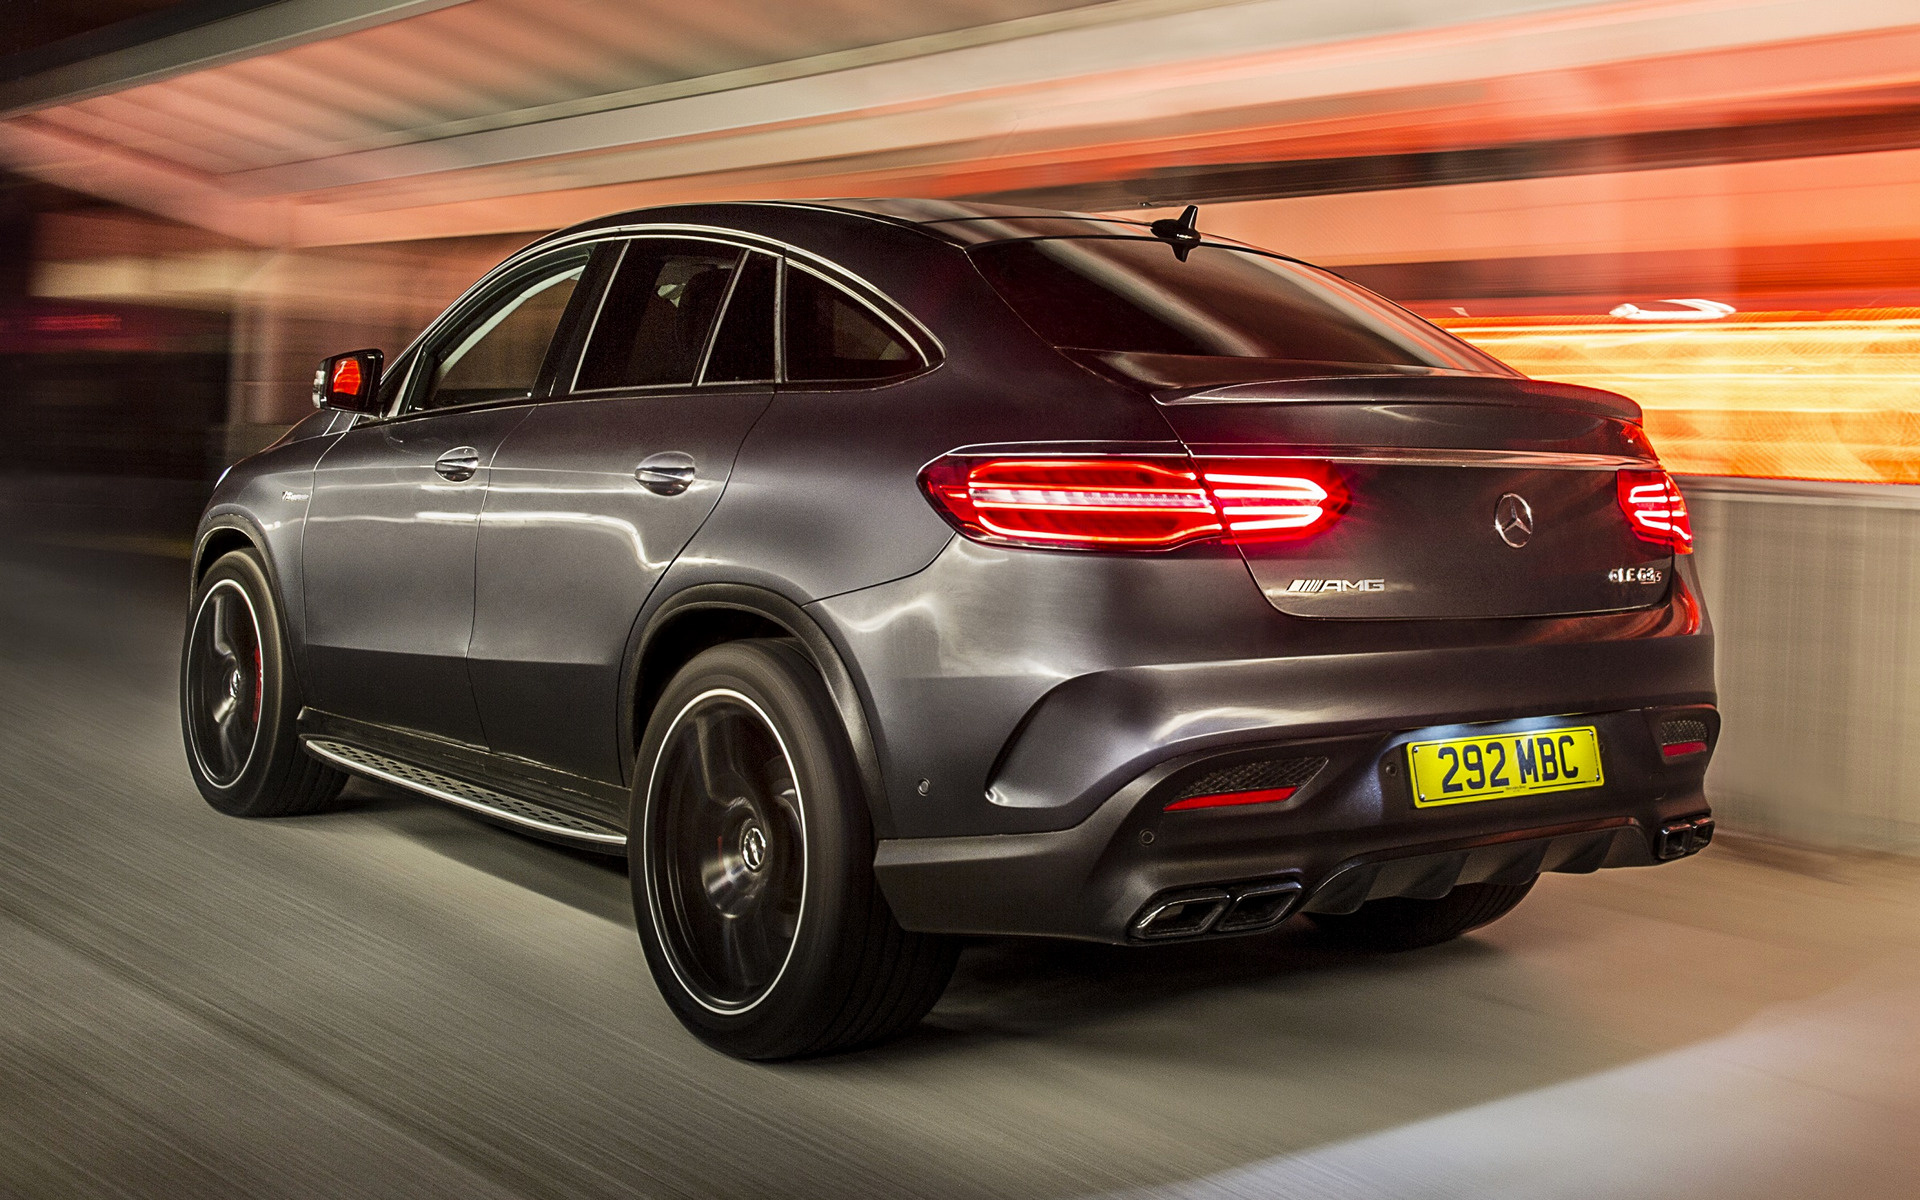 Mercedes Amg Gle S Coupe Car Wallpaper